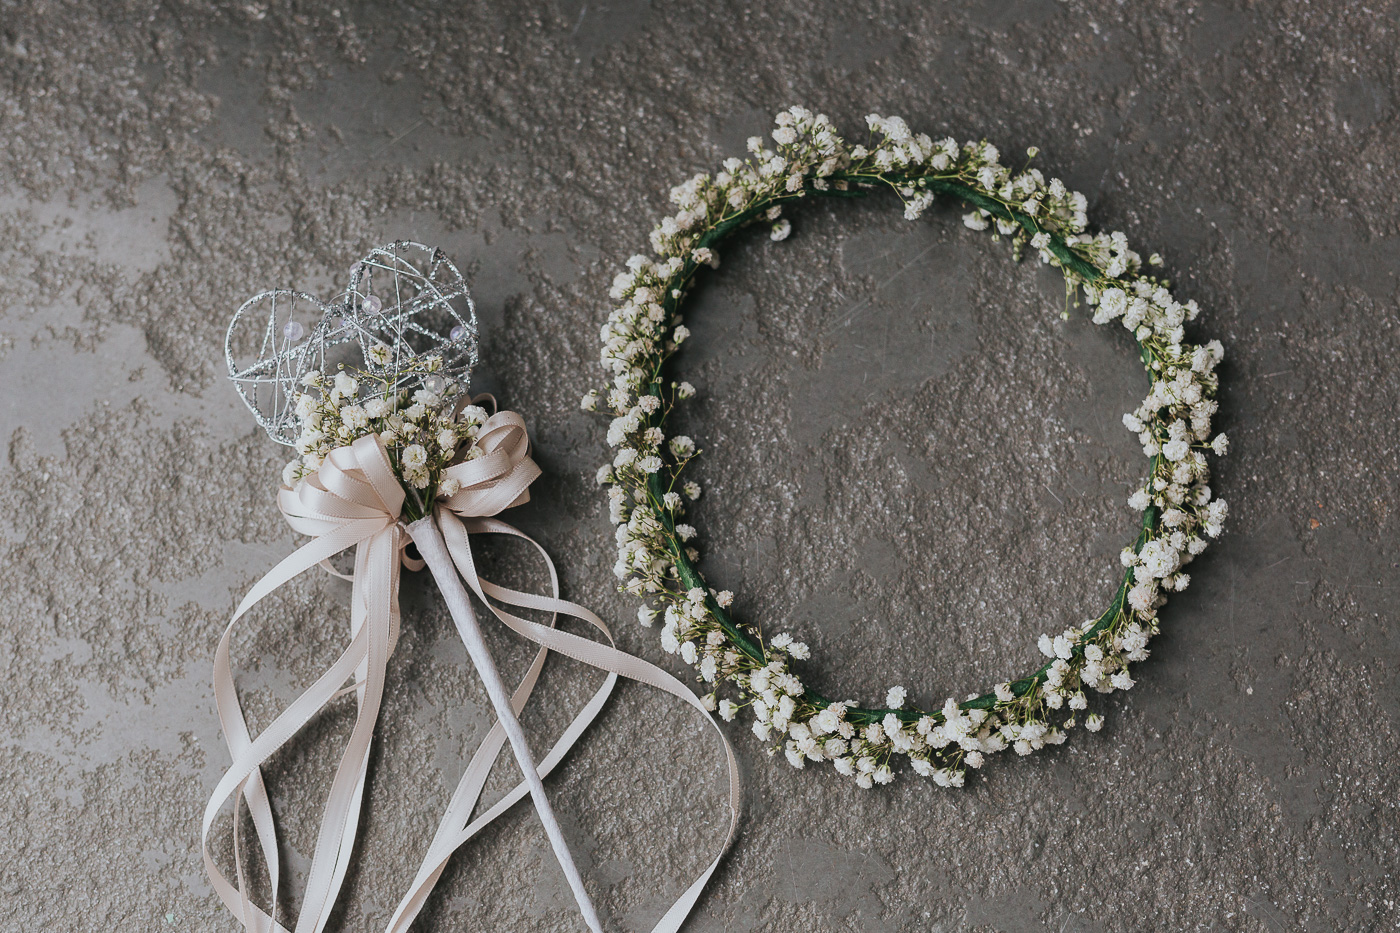 Flower girl's accessories by Kate Mell.jpg